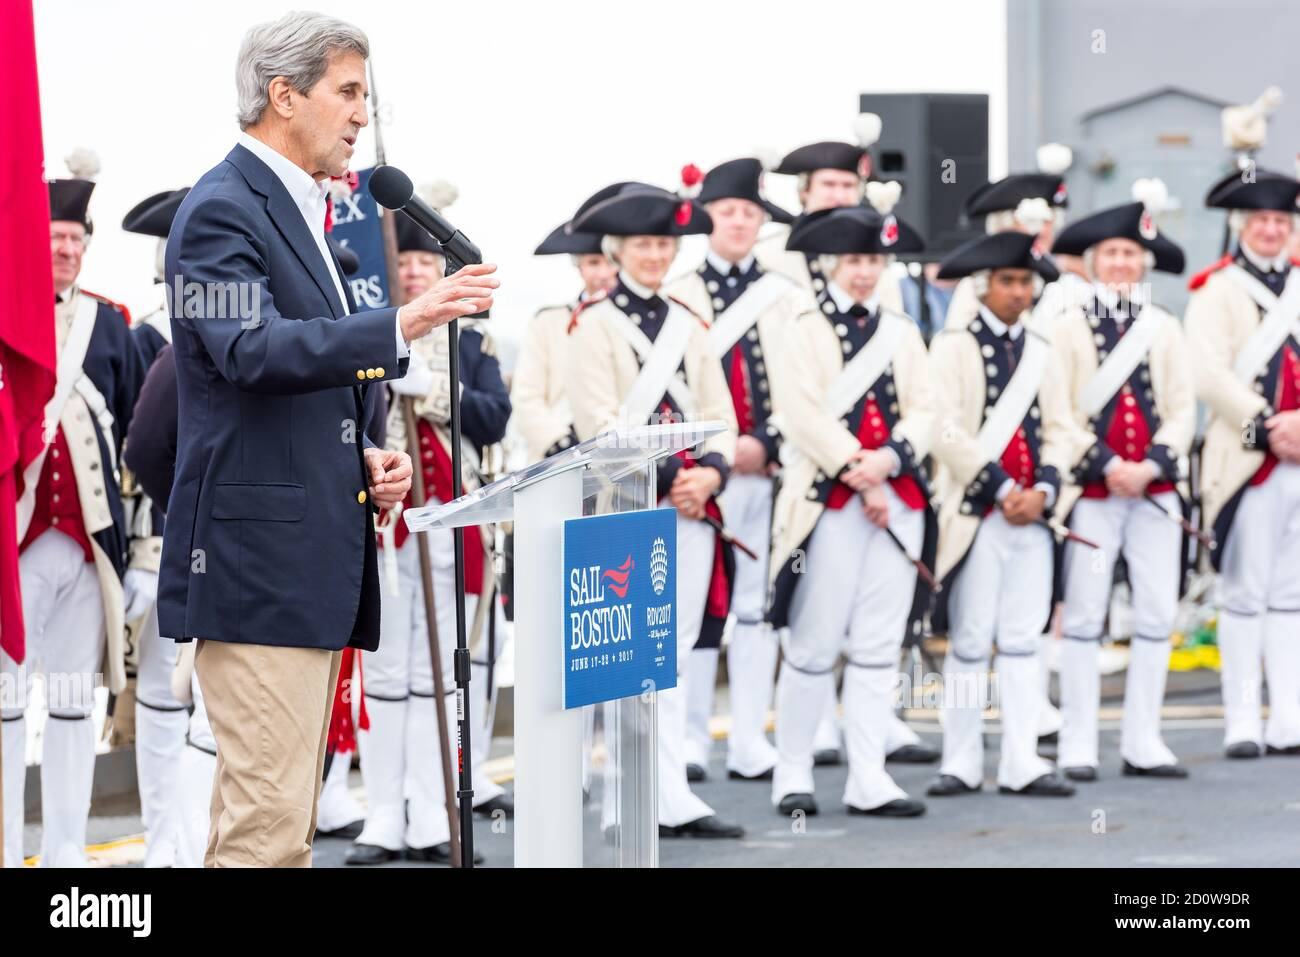 Boston, Massachusetts. 13th June, 2017. Former Secretary of State John Kerry speaking at Sail Boston. Photographed from the USS Whidbey Island. Stock Photo